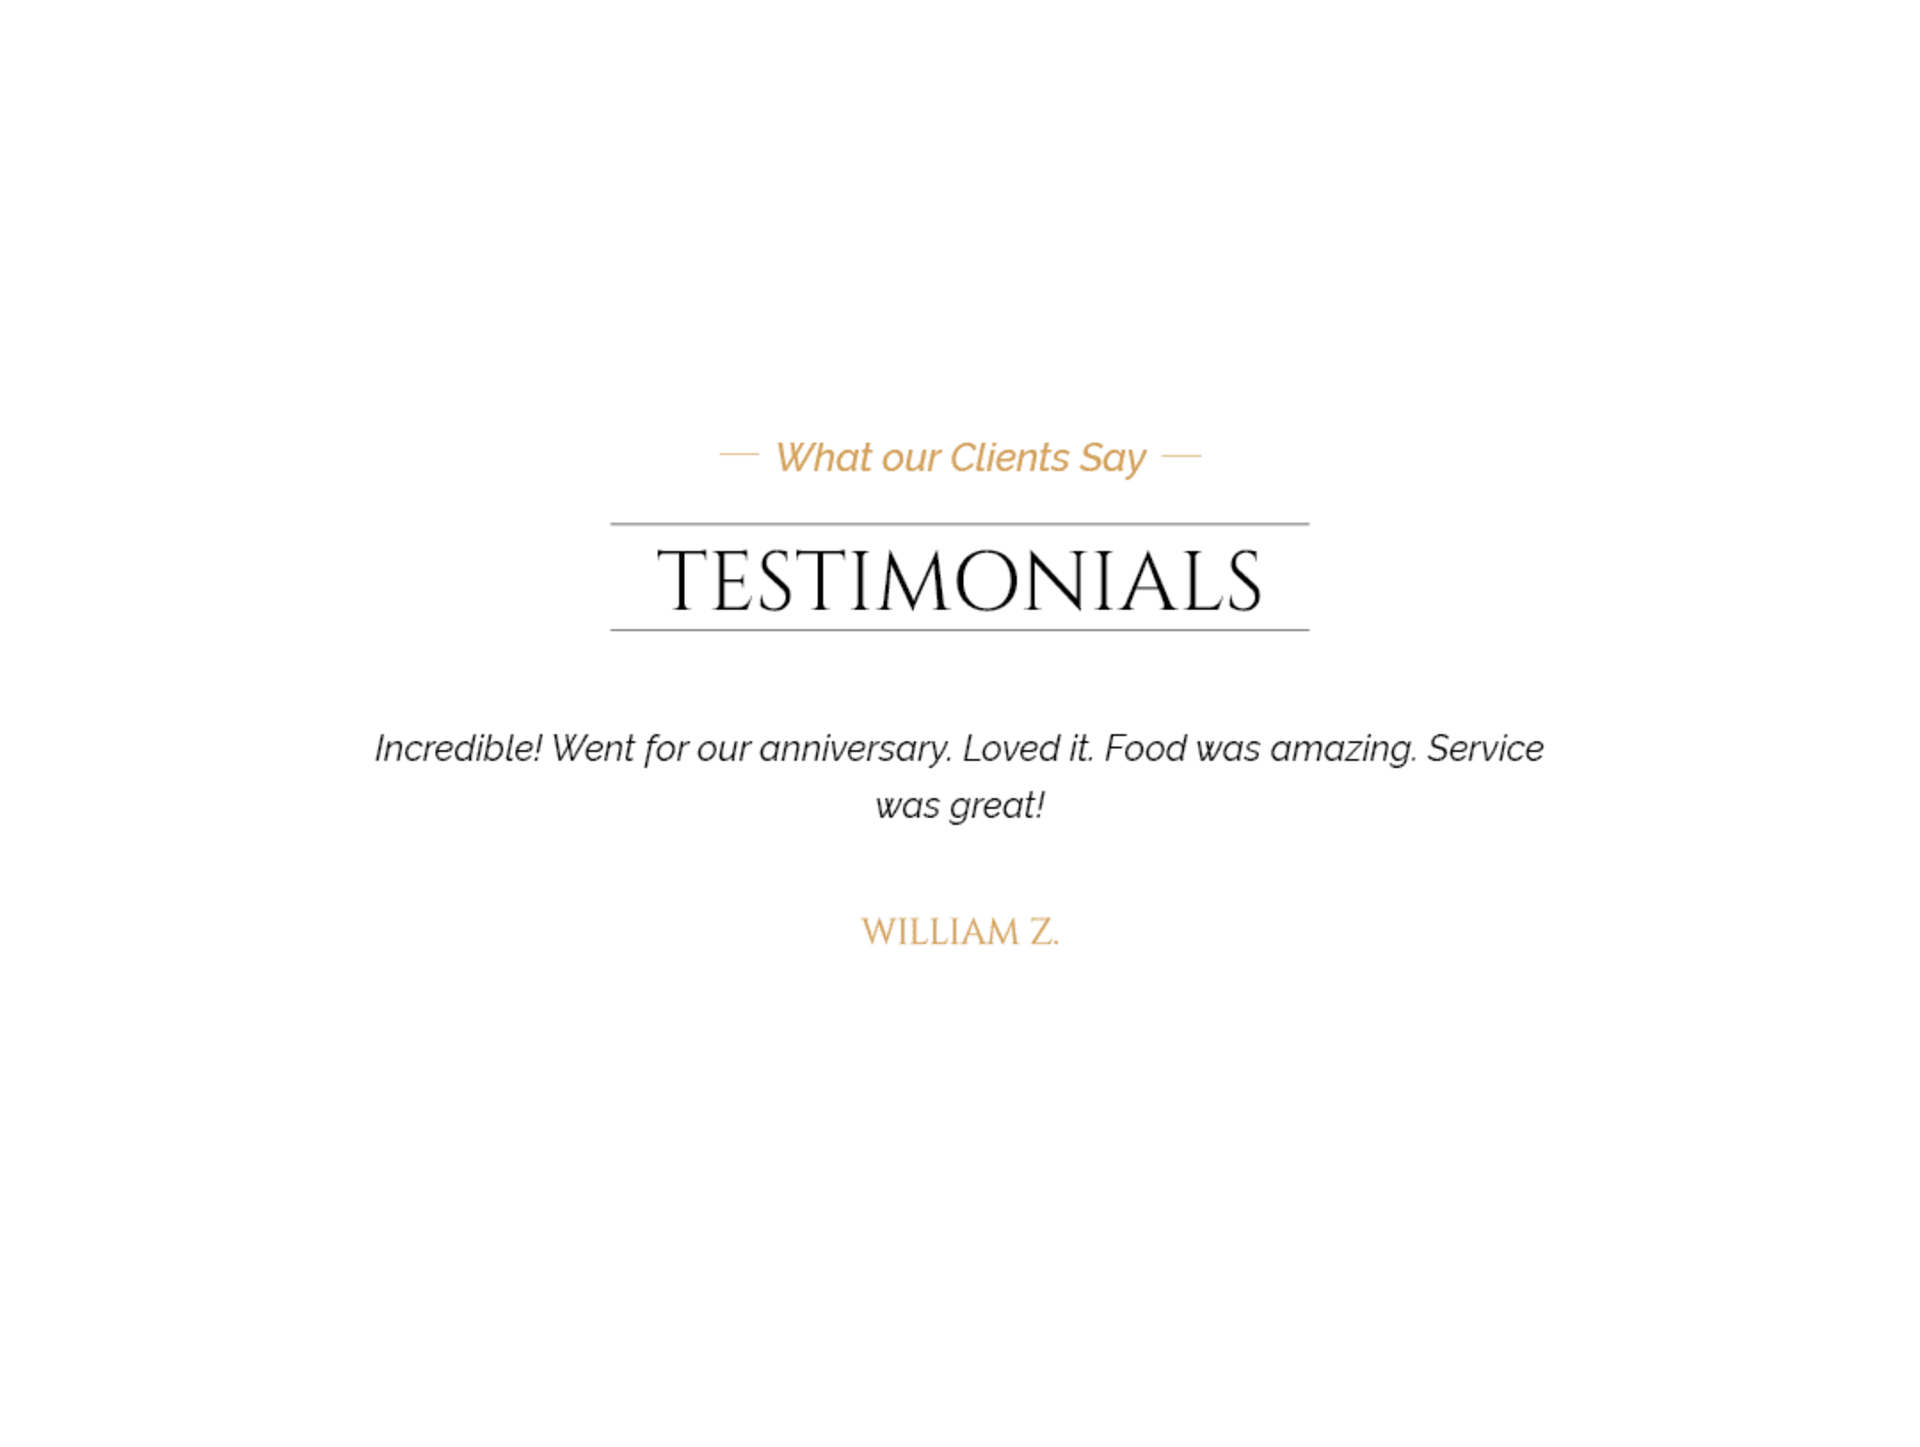 Client testimonial: Incredible! Went for our anniversary. Loved it. Food was amazing. Service was great! From William Z